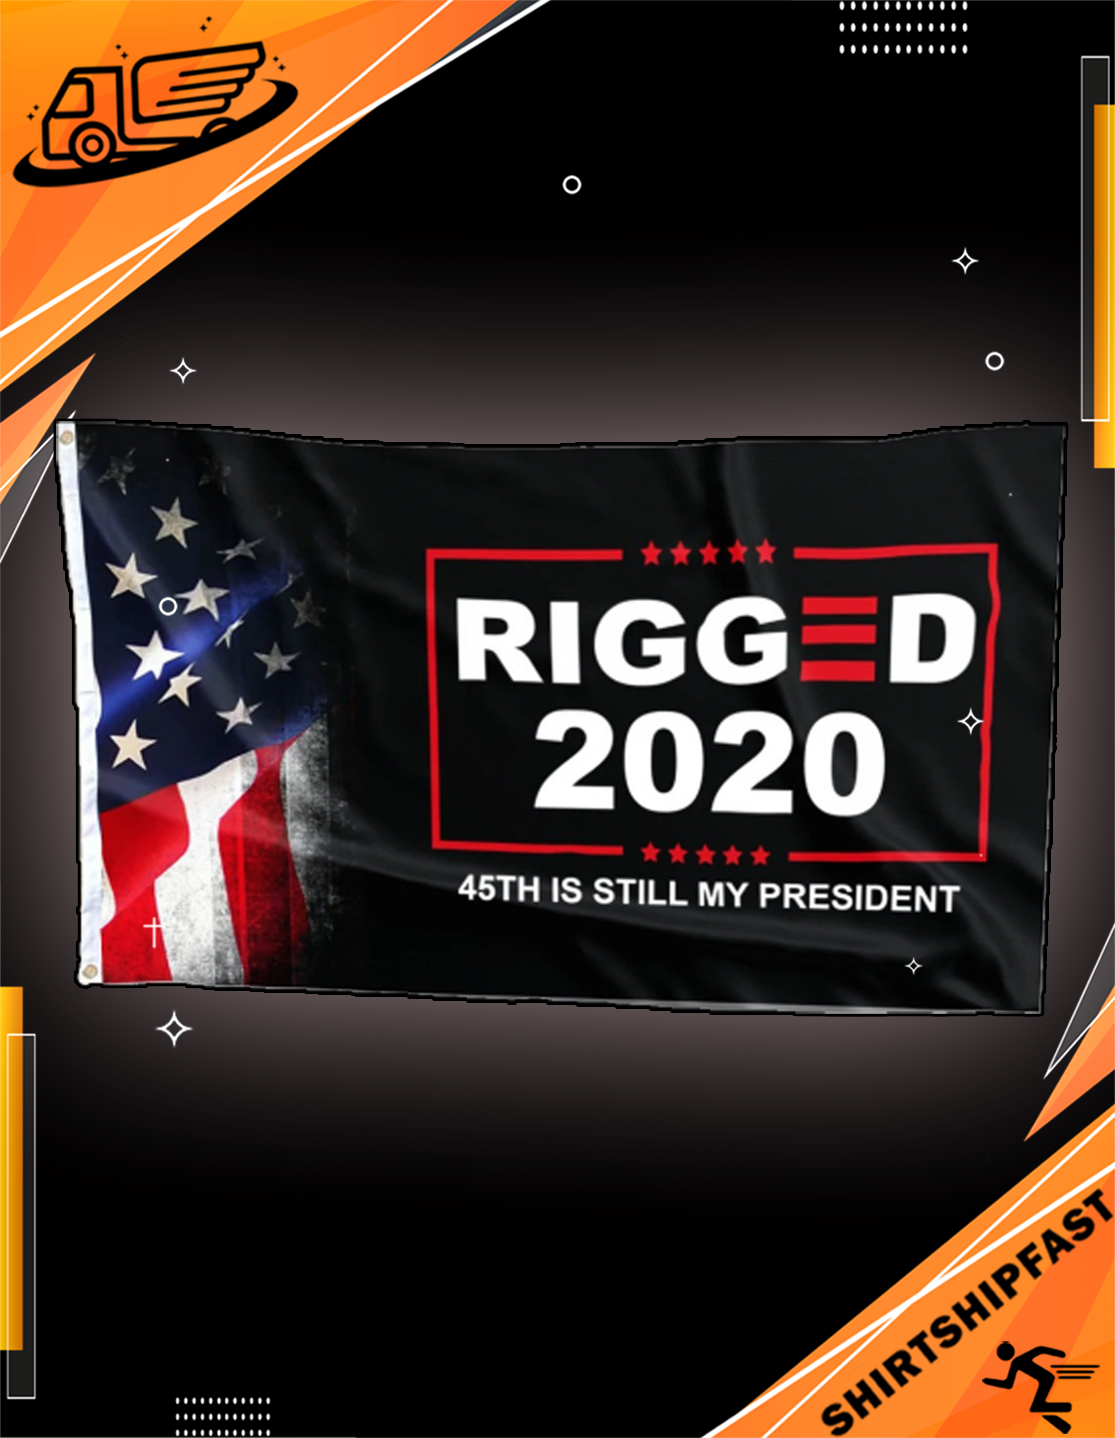 Rigged 2020 45th is still my President flag - Picture 3